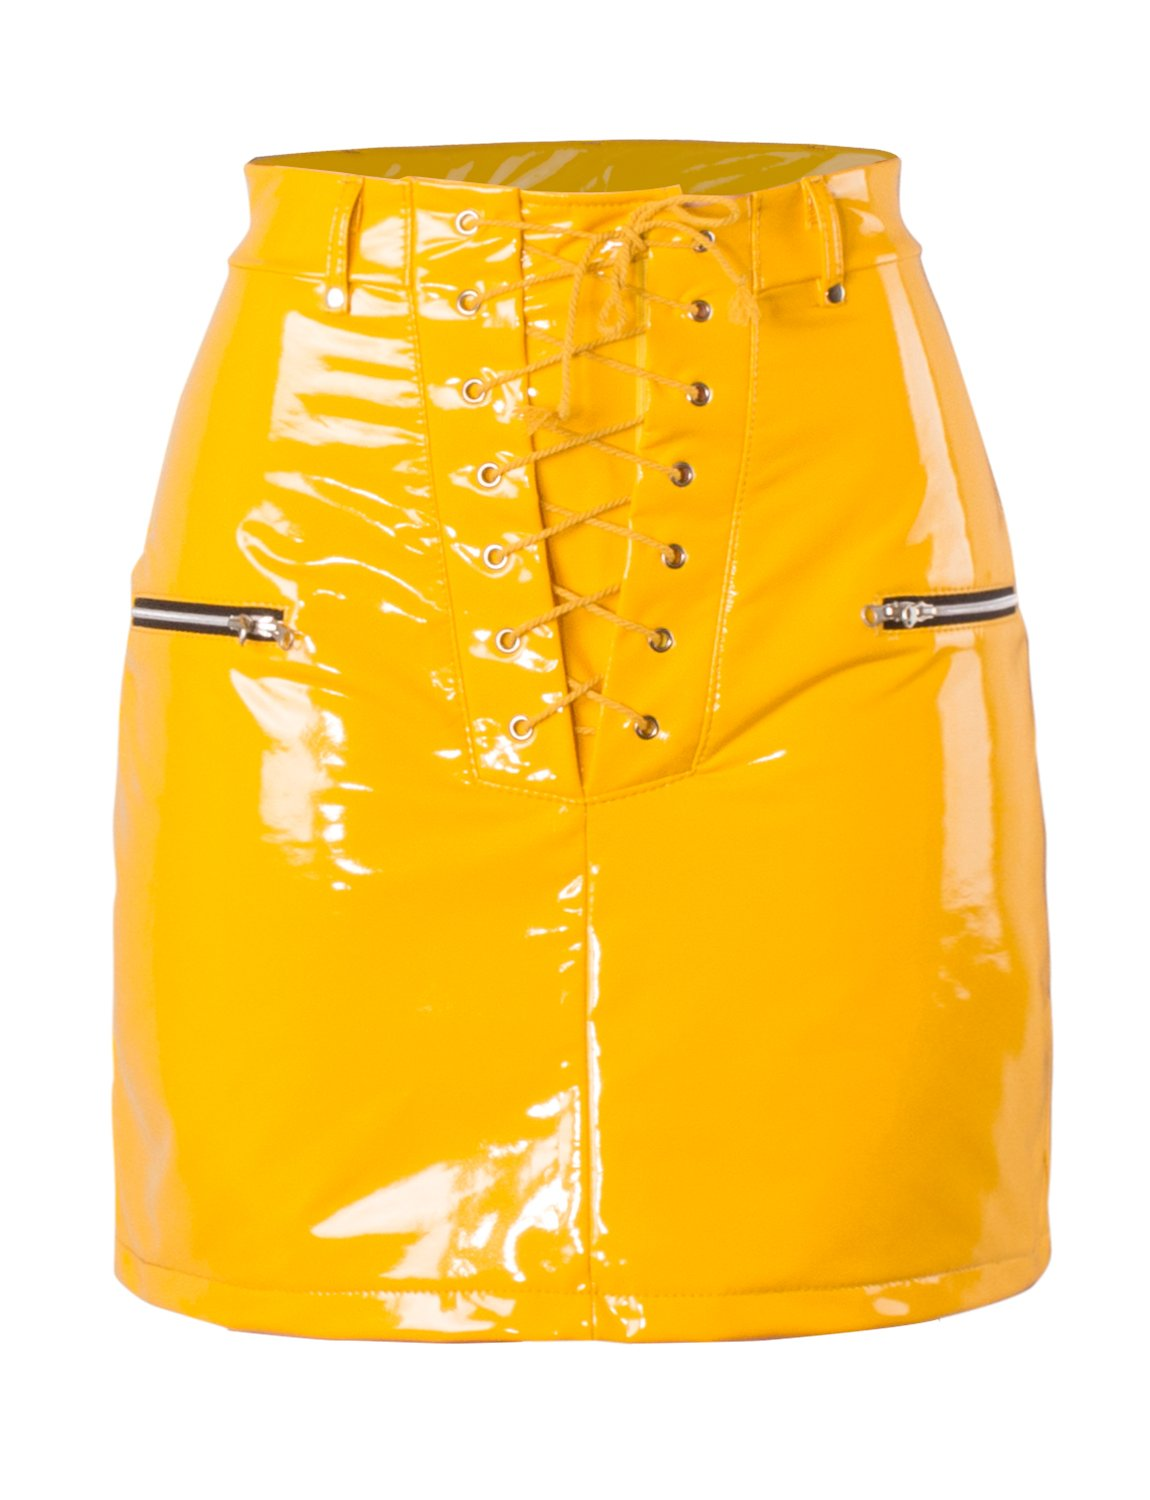 Sedrinuo Women's Party Bright PU Leather Skirts High Waist Bodycon Lace Up Skirts